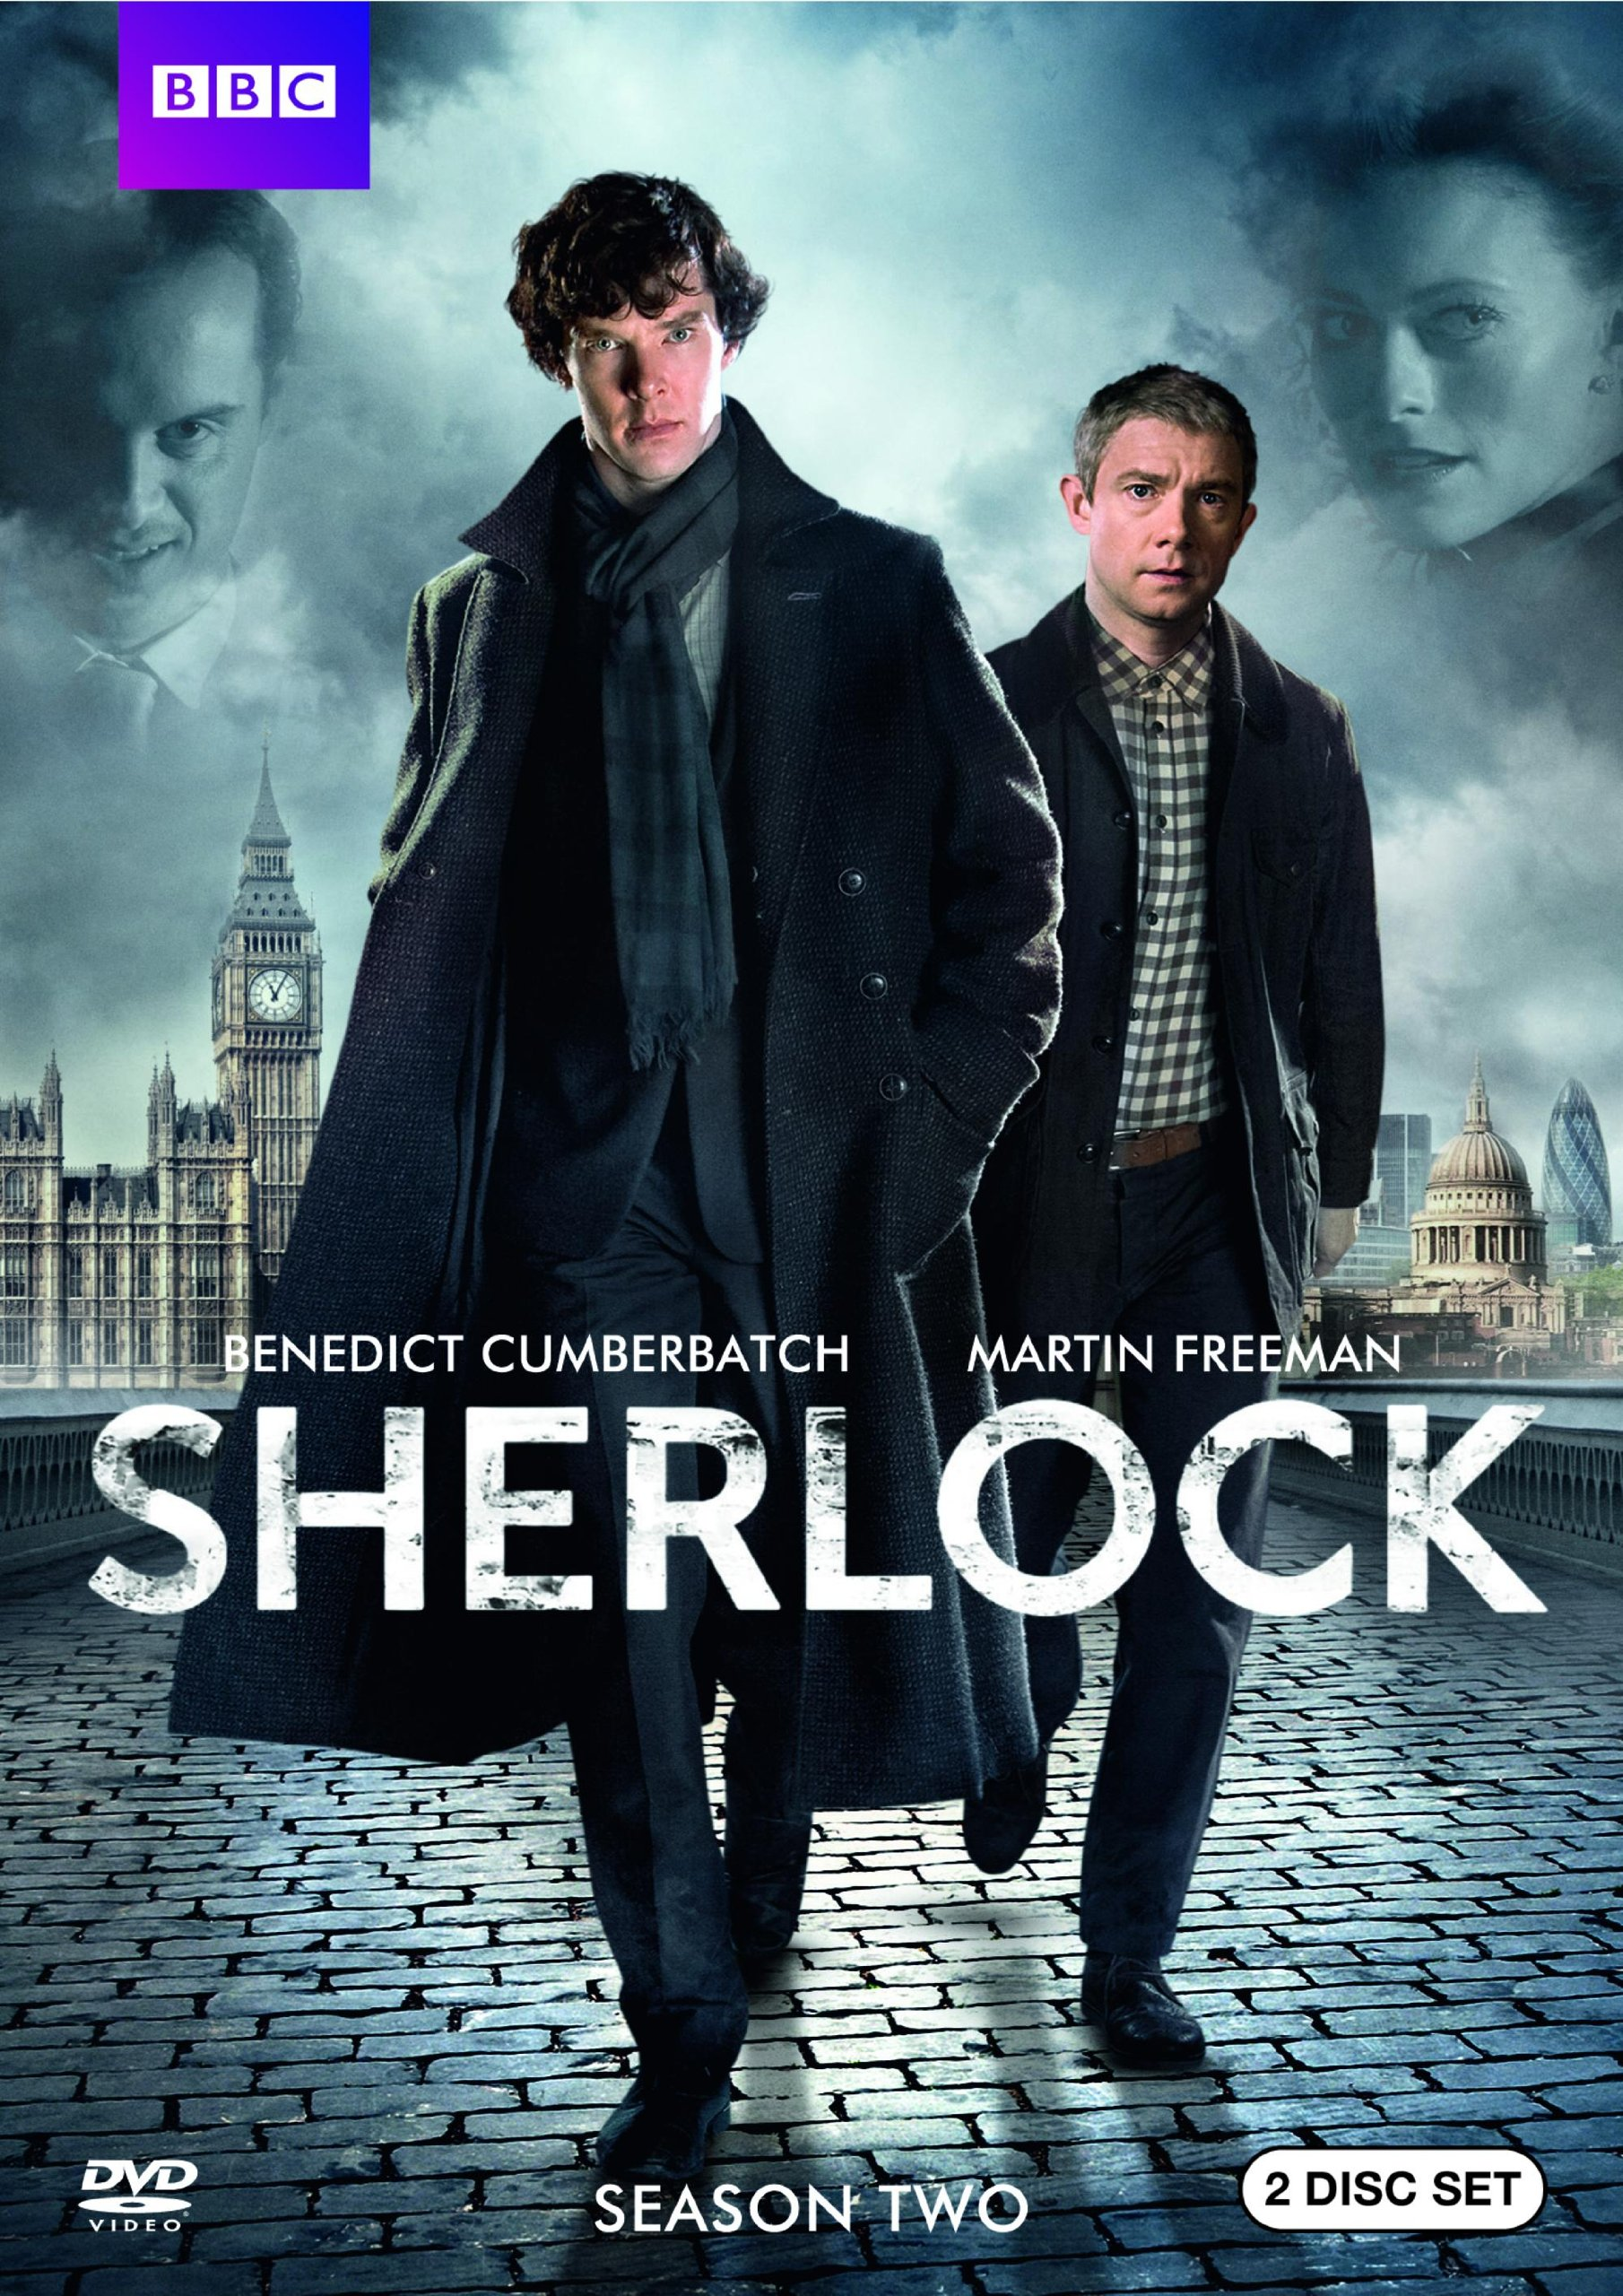 sherlock-season-two-dvd-cover-26[1]